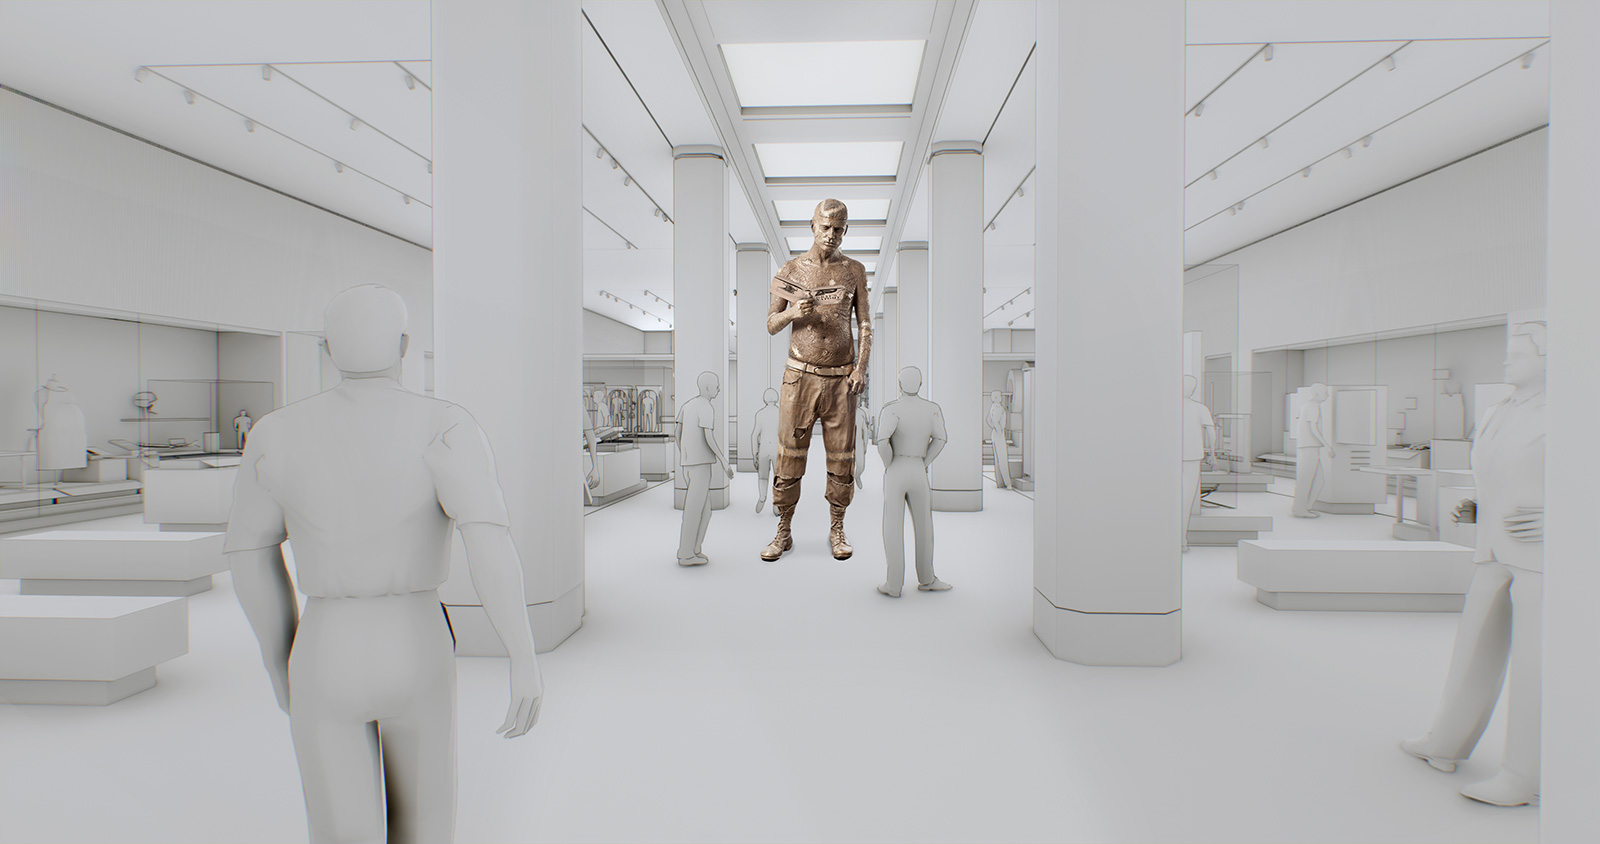 11 new museums opening in 2019: Artist's impression of Marc Quinn sculpture in the Science Museum. (c) WilkinsonEyre